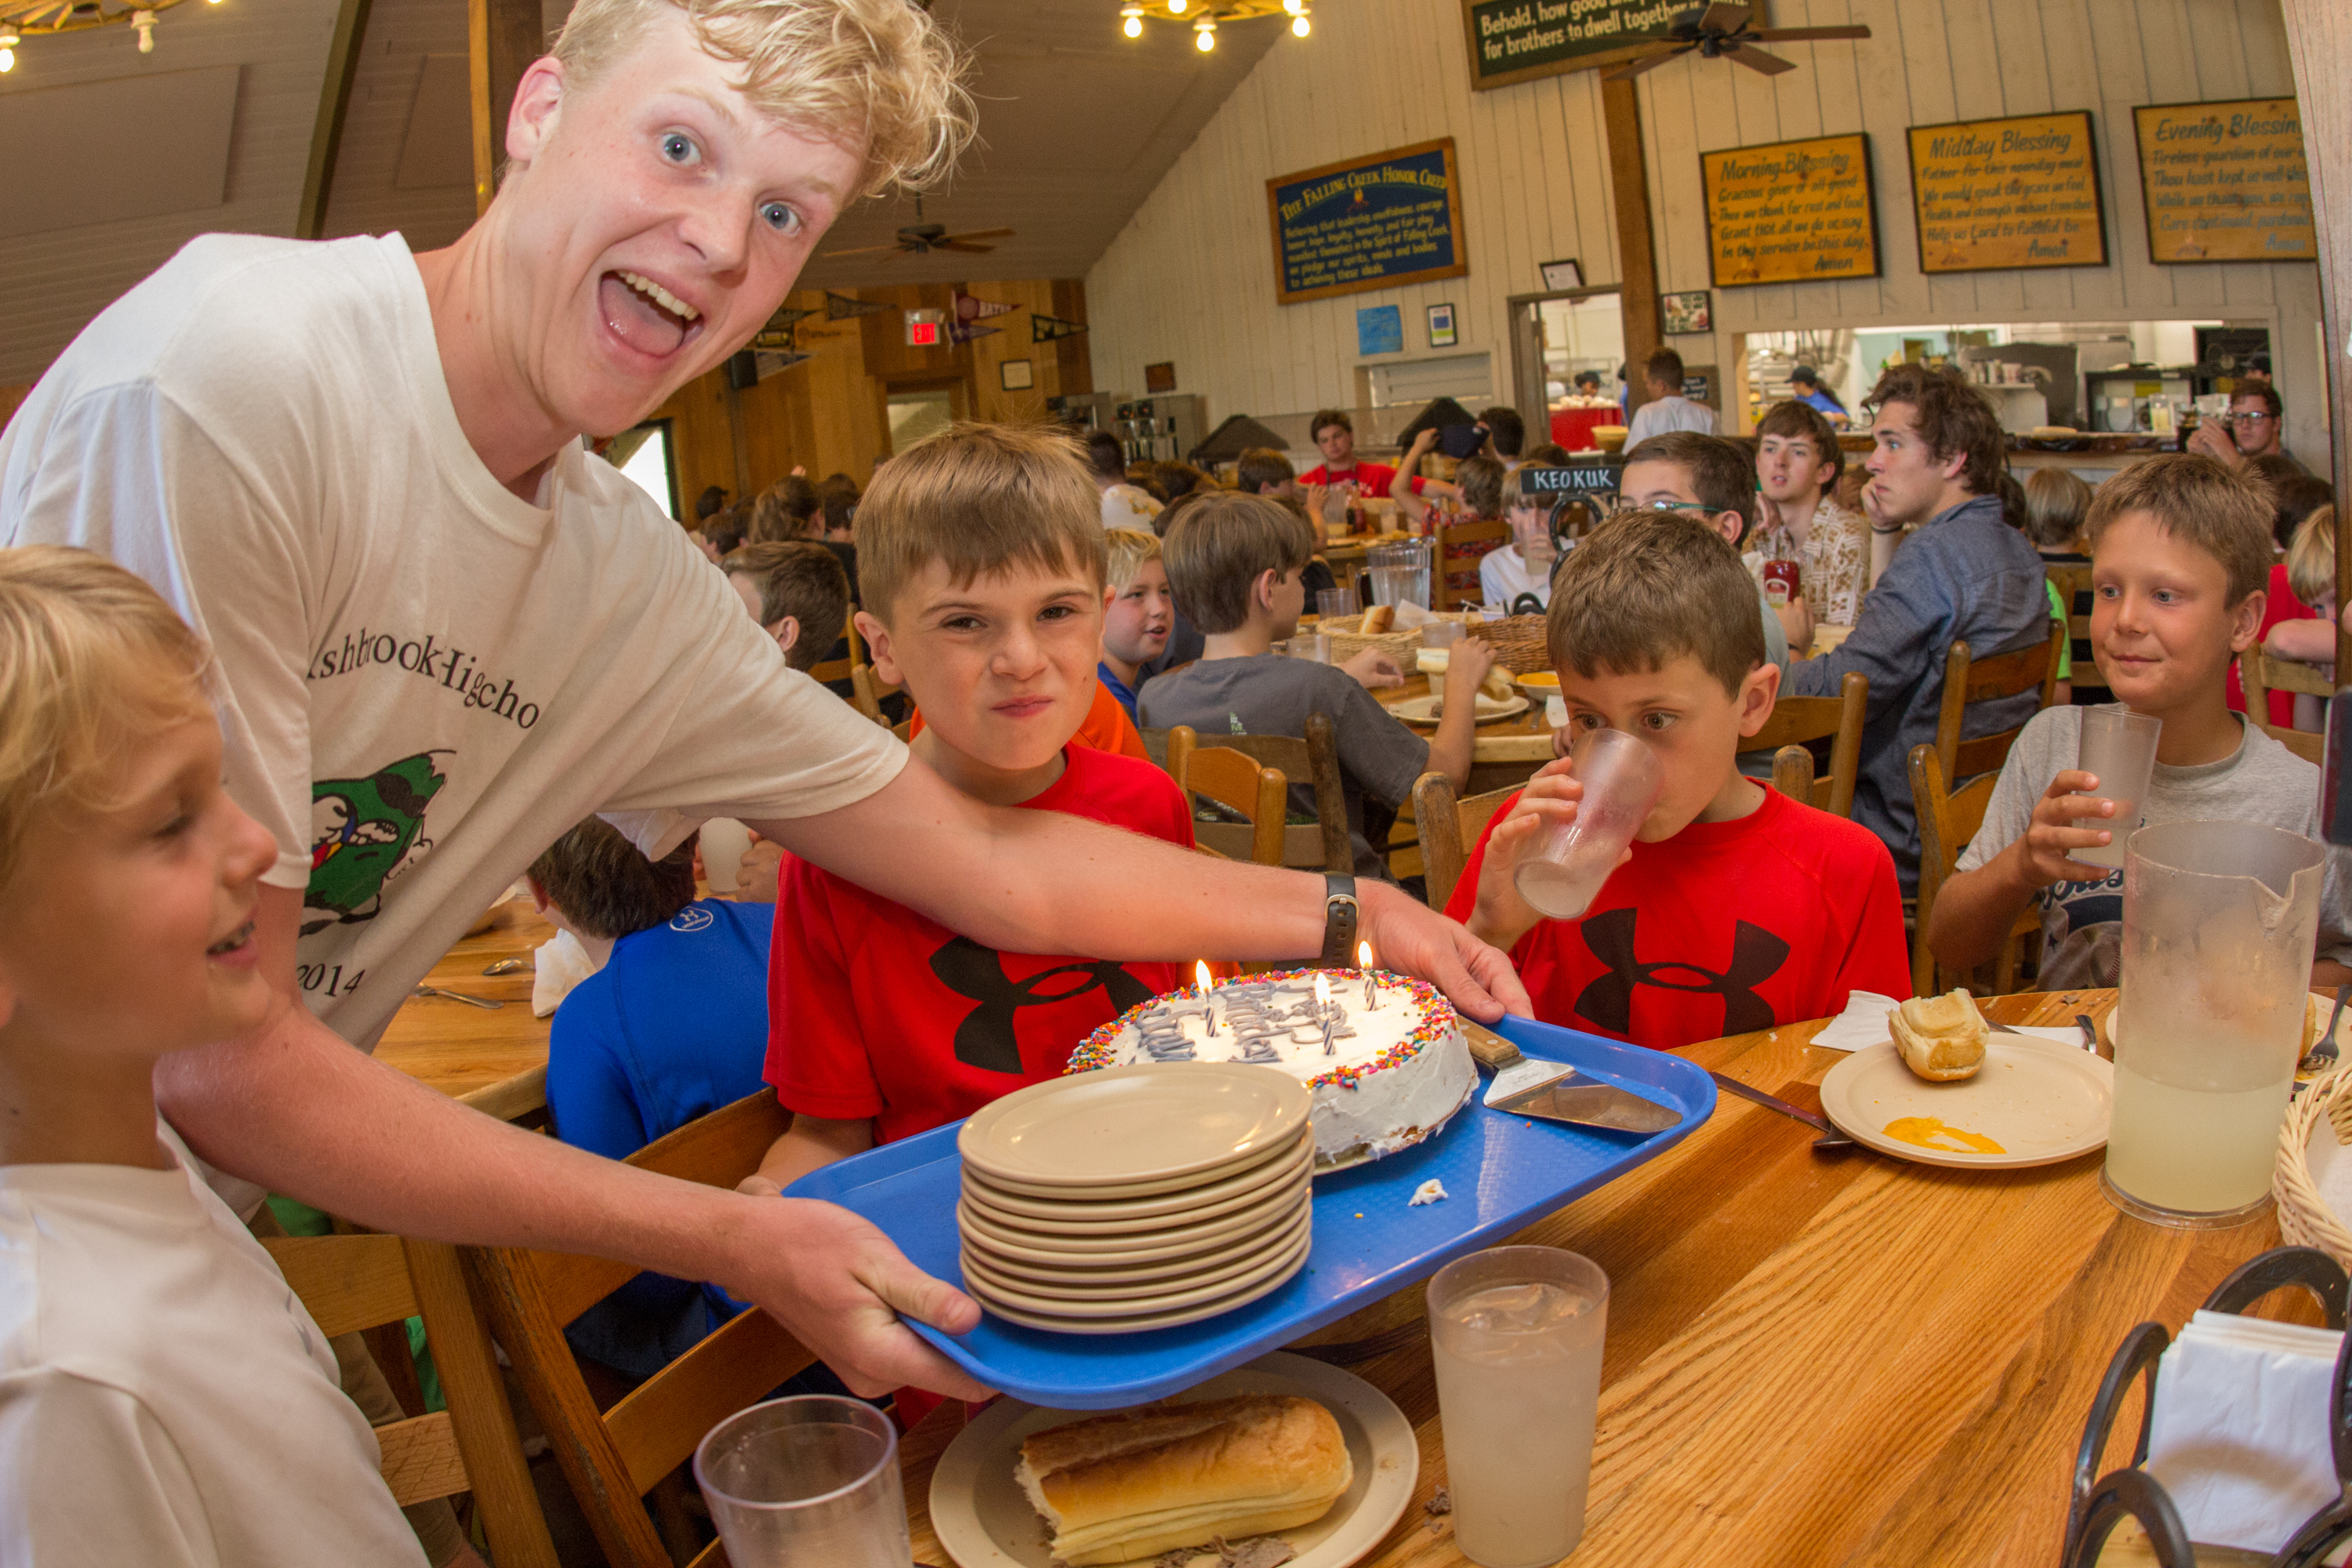 Birthdays at camp are awesome! If it is your birthday while you are at camp, everyone in the dining hall sings 'Happy Birthday' to you as we bring a cake to your table at either lunch or dinner. You get to share the cake with your cabinmates and friends.